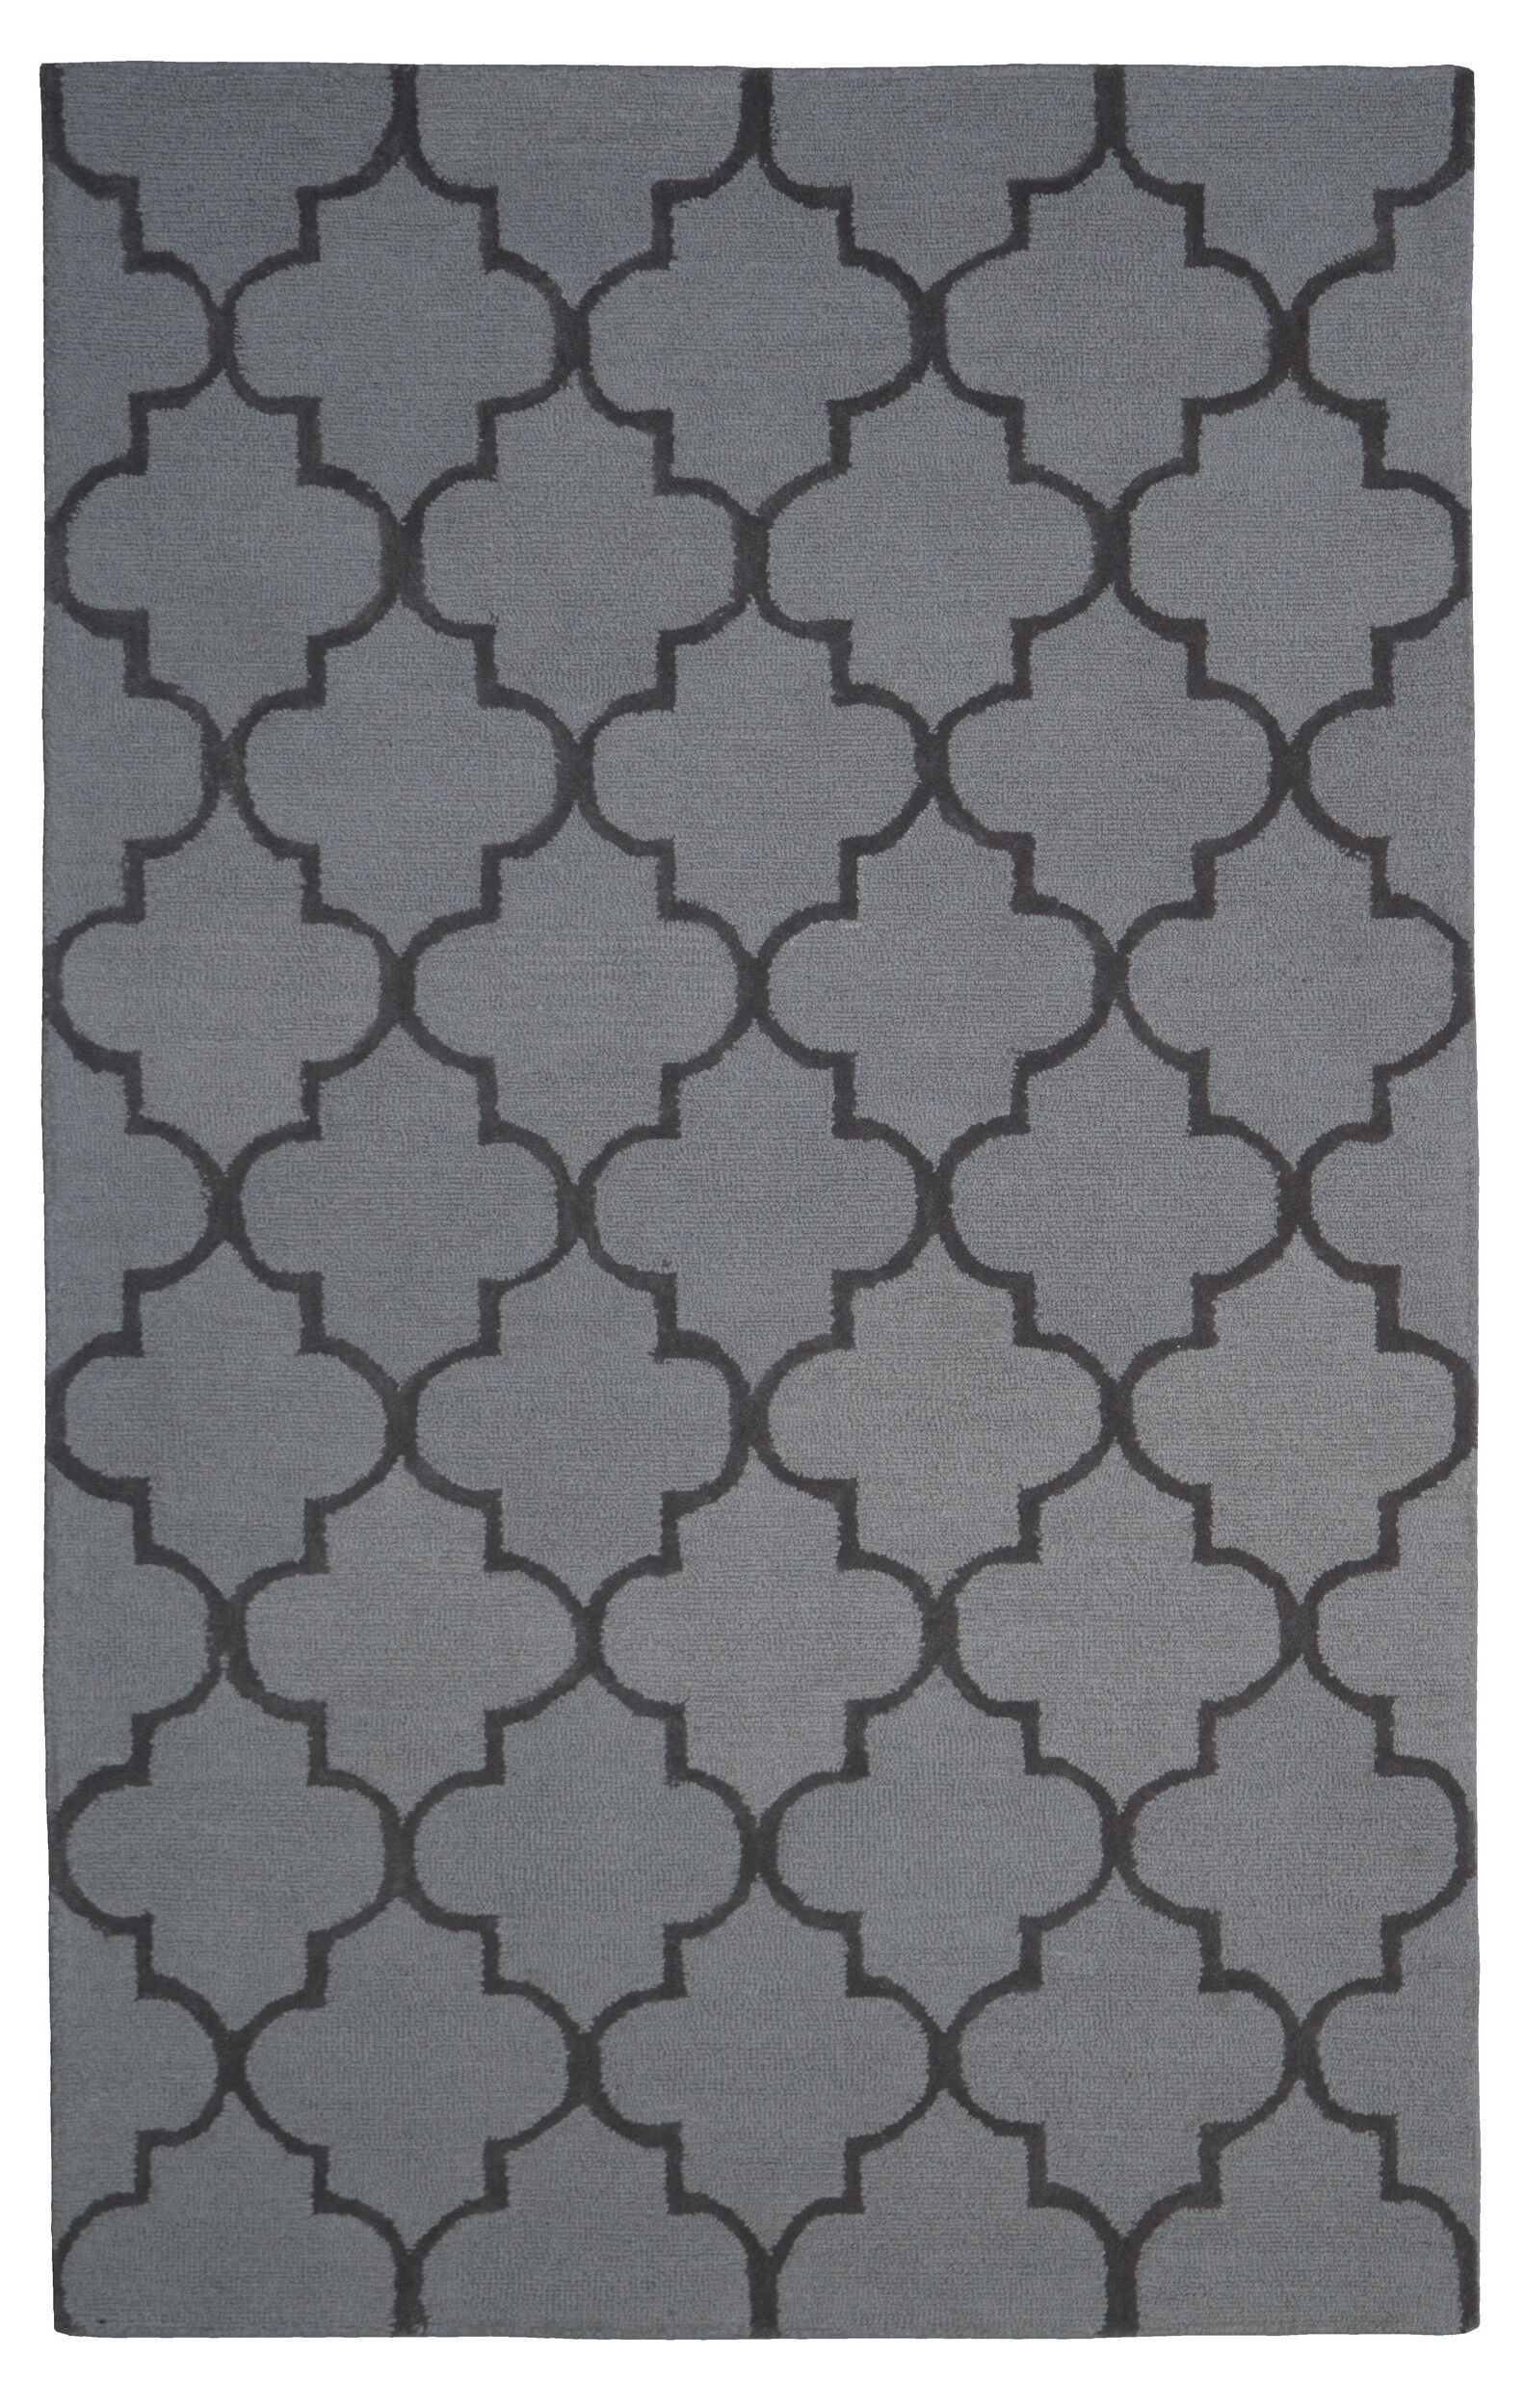 Wool Hand-Tufted Rust/Brown Area Rug Rug Size: 5' x 8'